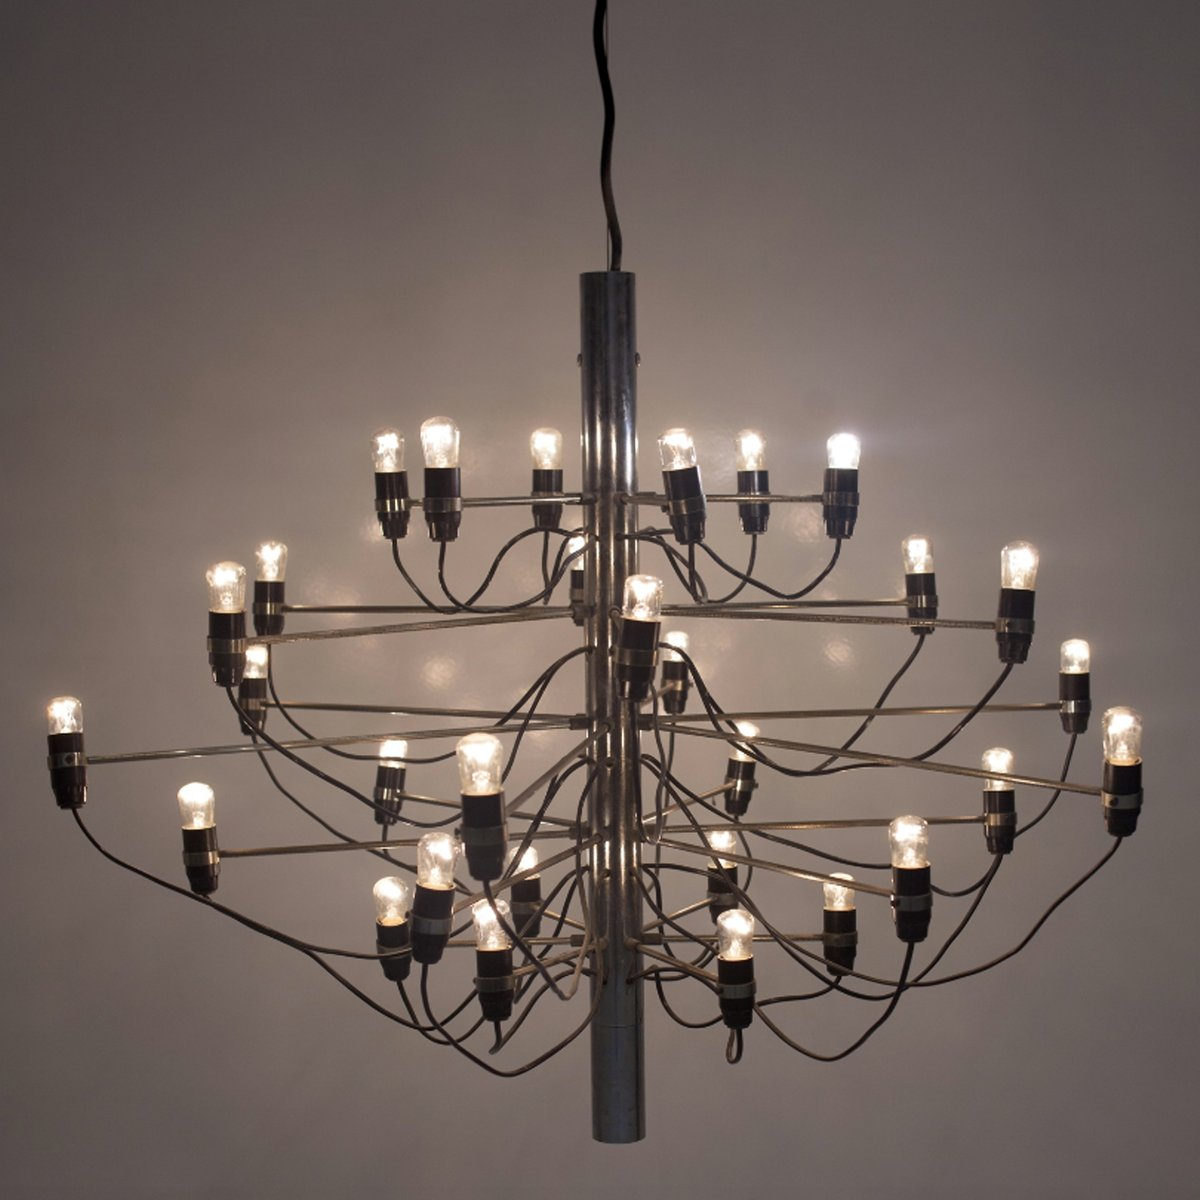 Model 209730 chandelier by gino sarfatti for arteluce 1958 for price per piece aloadofball Image collections